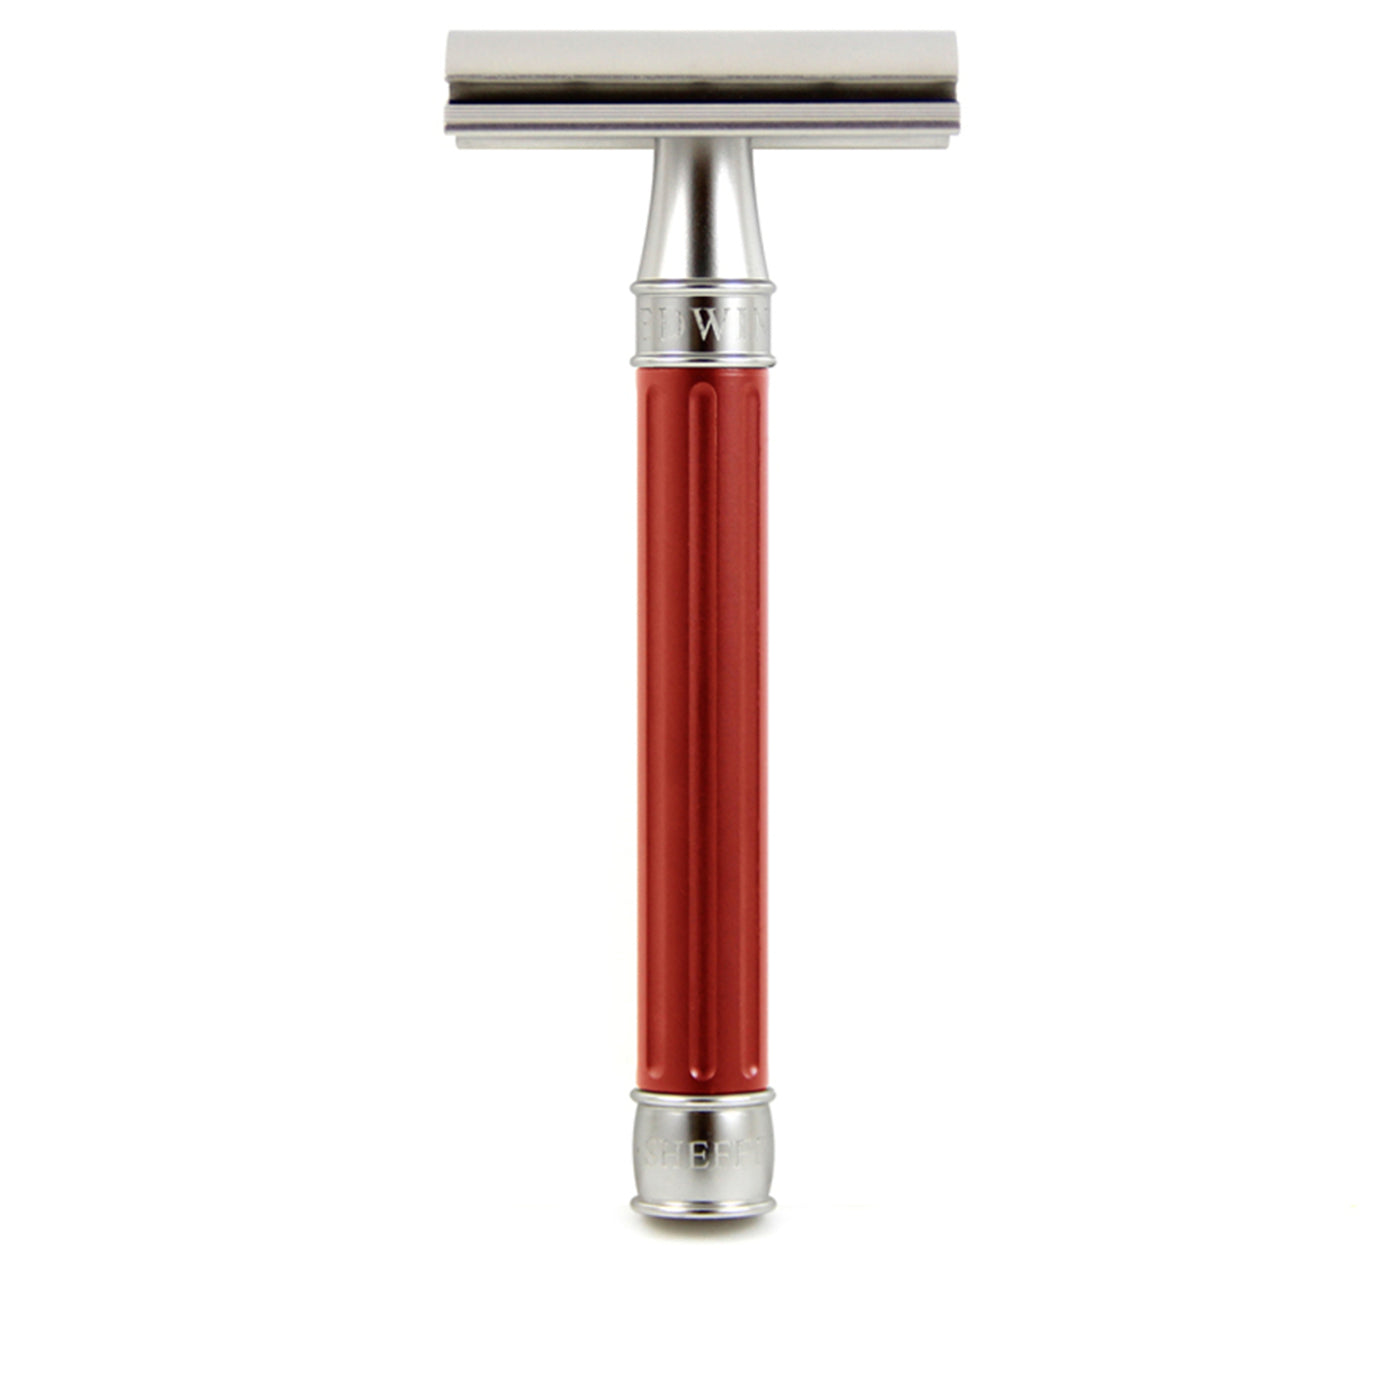 Edwin Jagger 3ONE6 Stainless Steel Double Edge Safety Razor, Red